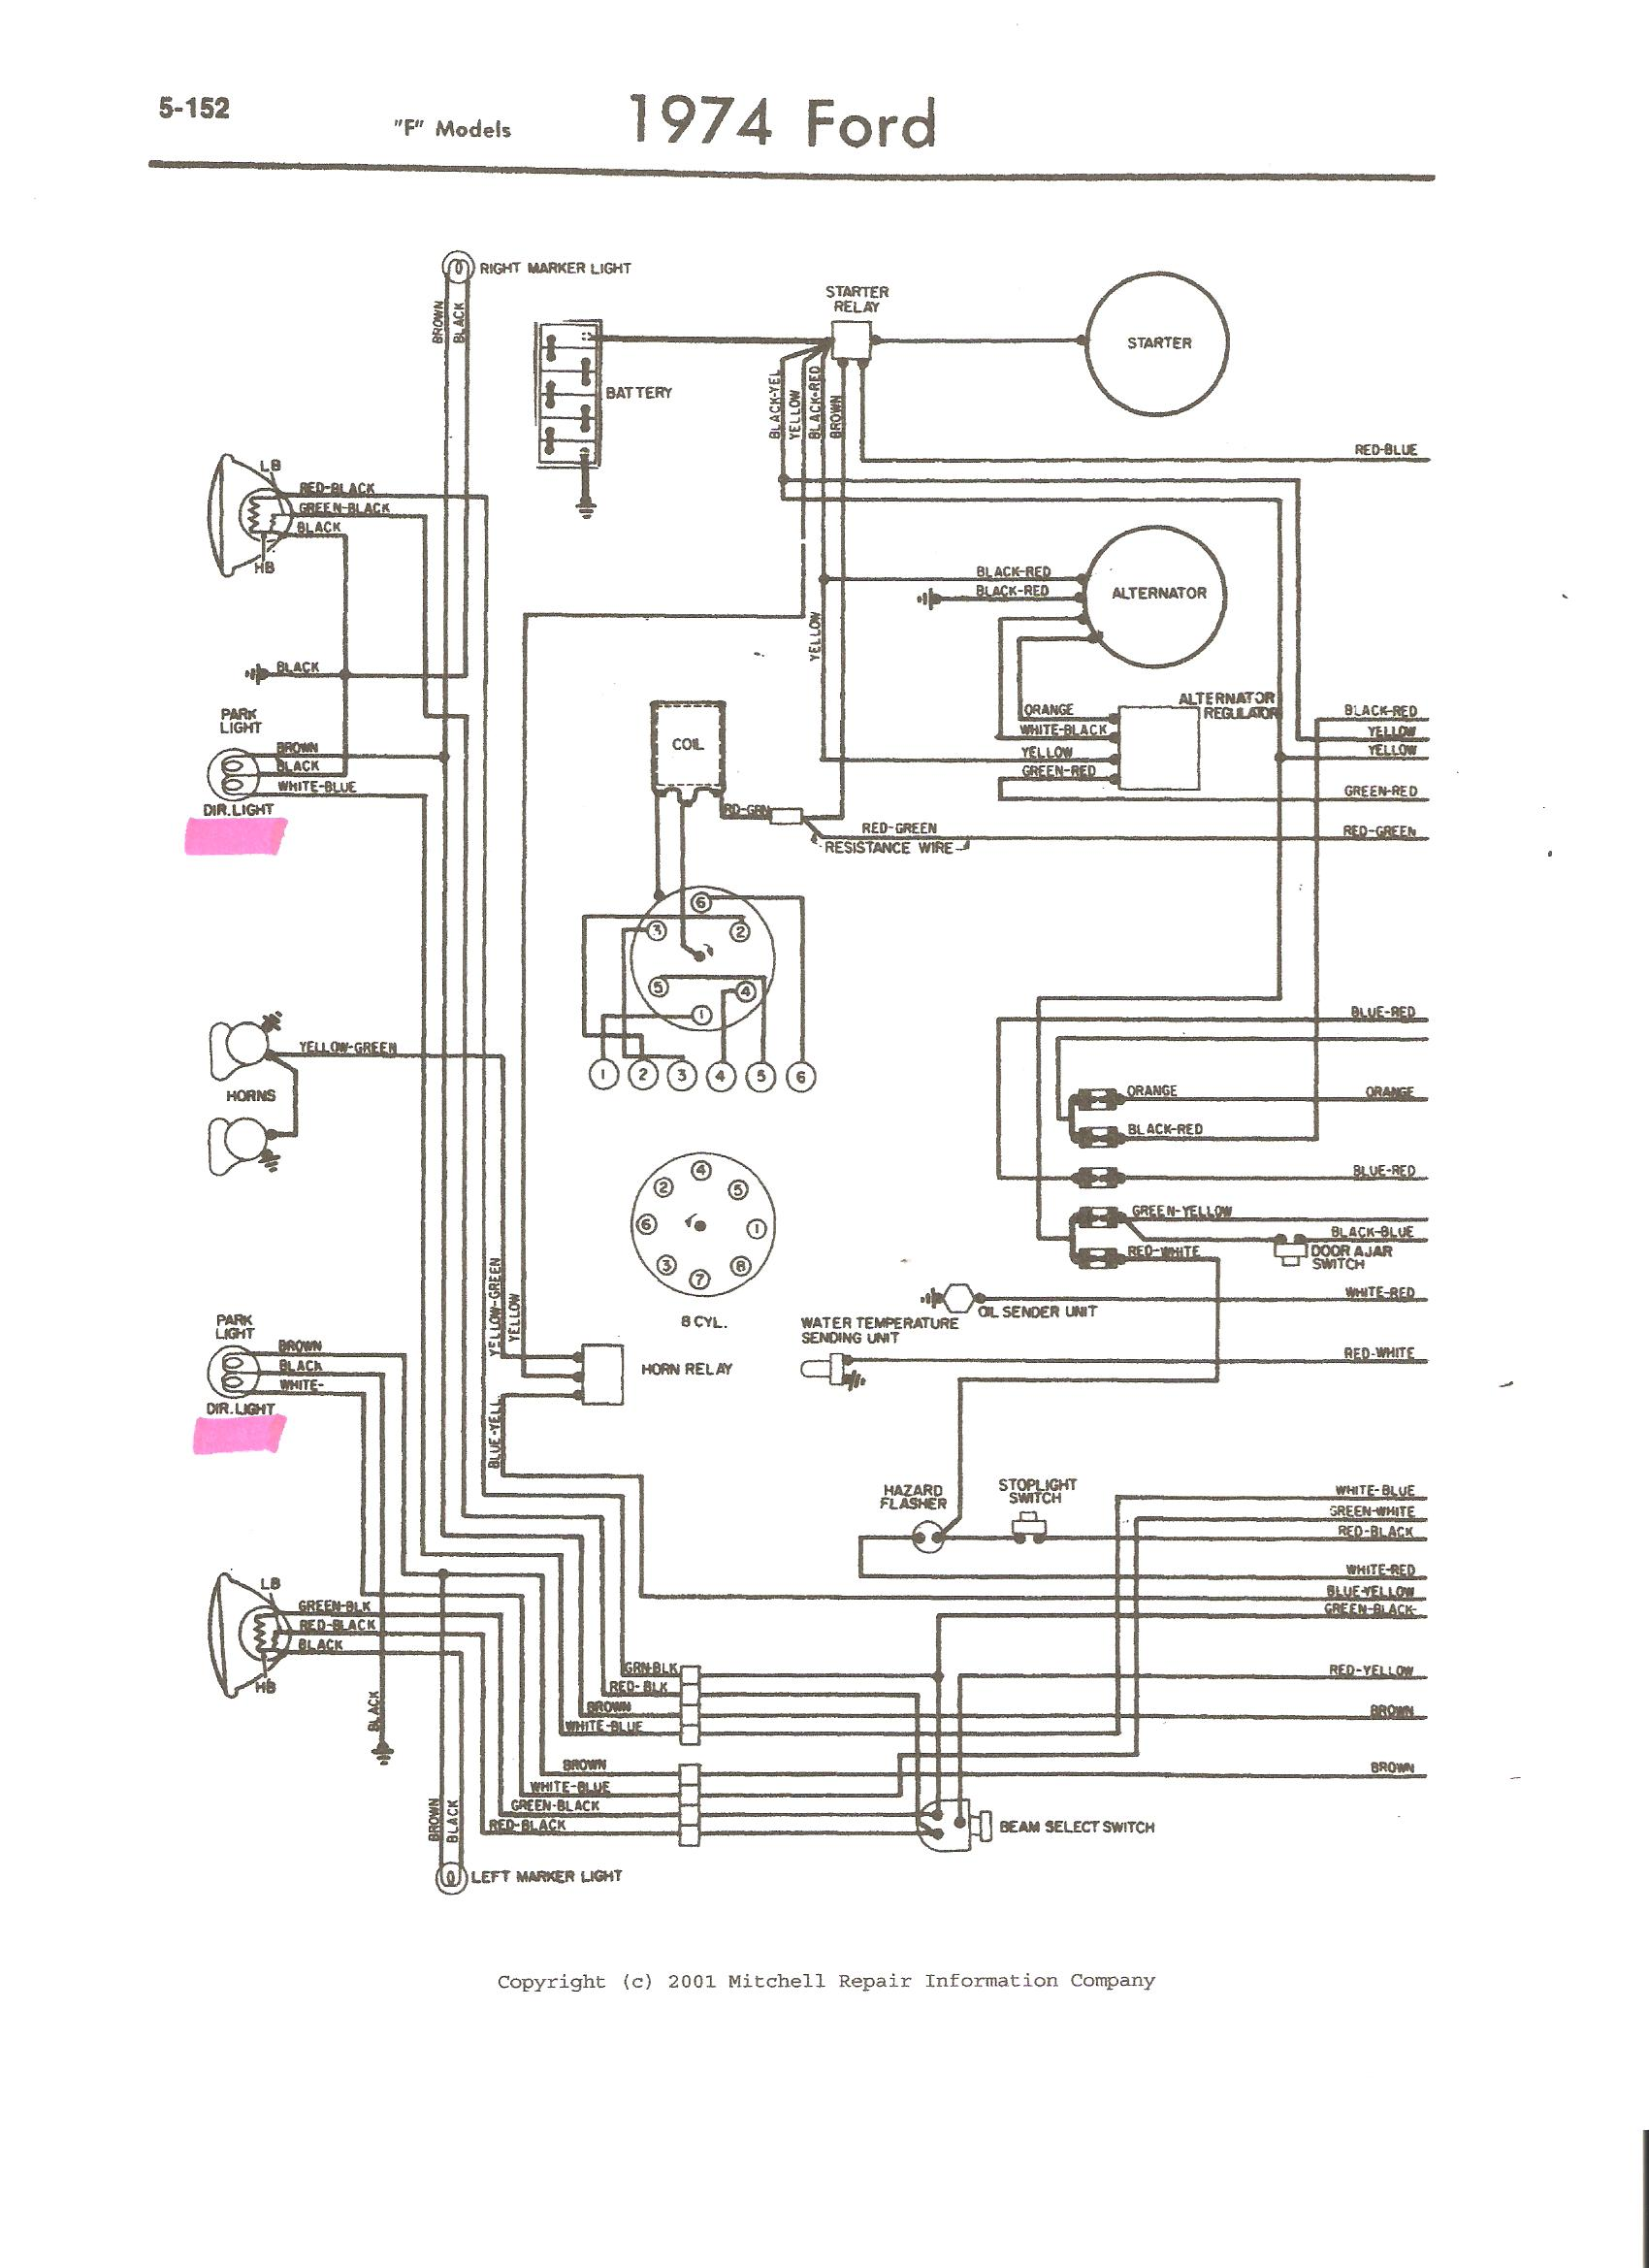 i have a 1973 ford f100 pick up the signal light switch in the 74 f350 wiring diagram the only thing that i can come up with is a schematic of the entire truck i hope you can use it this is the best i can do for you sorry